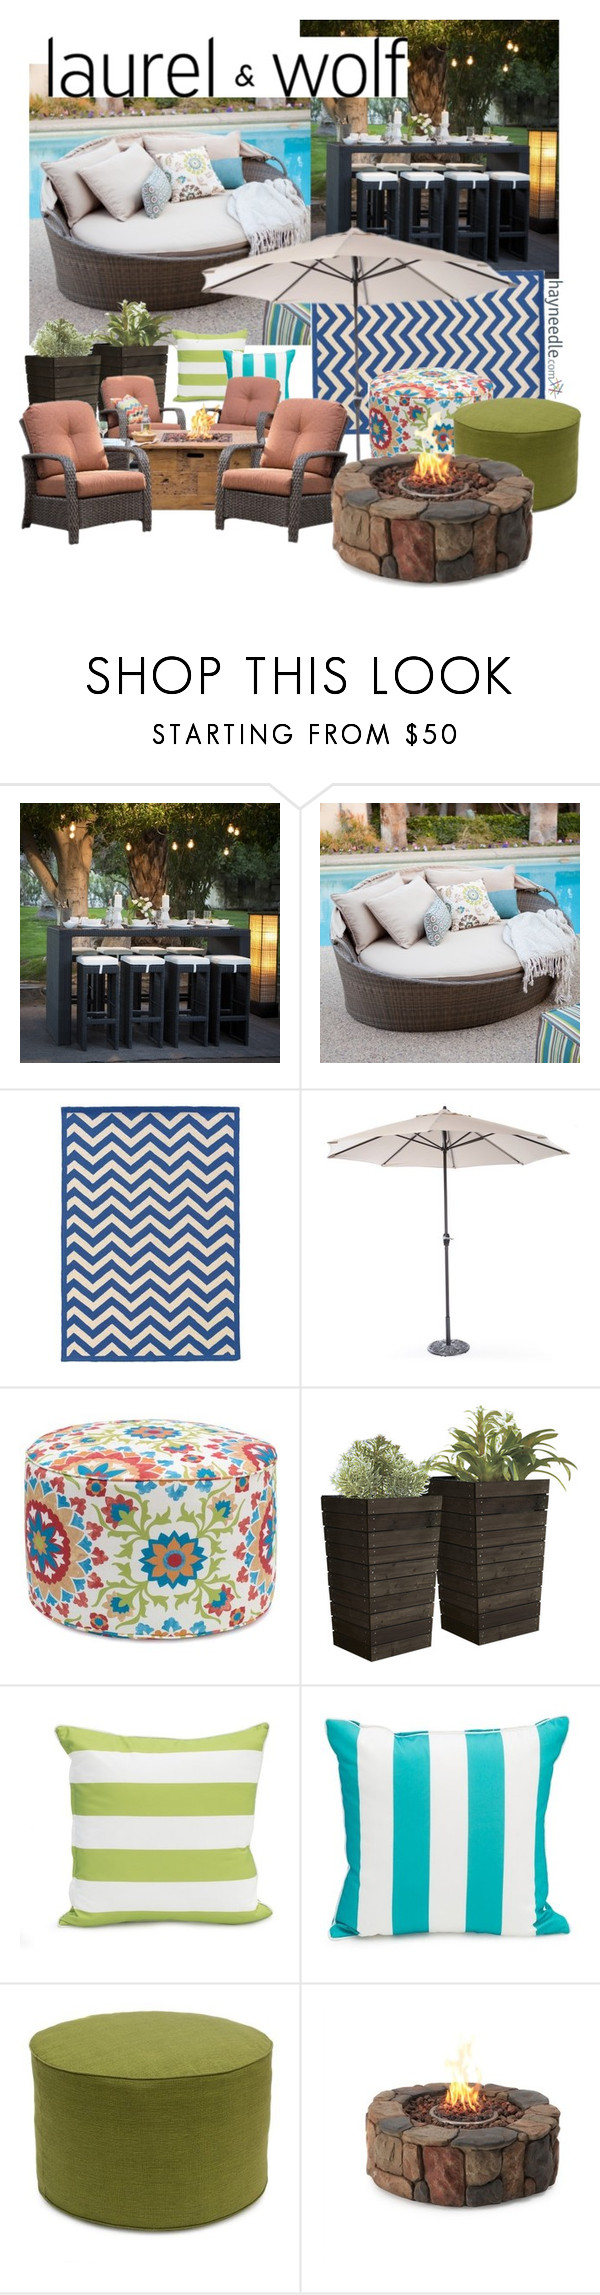 """Dream Outdoor Space"" by bisma-naeem ❤ liked on Polyvore featuring interior, interiors, interior design, home, home decor, interior decorating, Linon, contestentry and dreamoutdoorspacewithhayneedle"